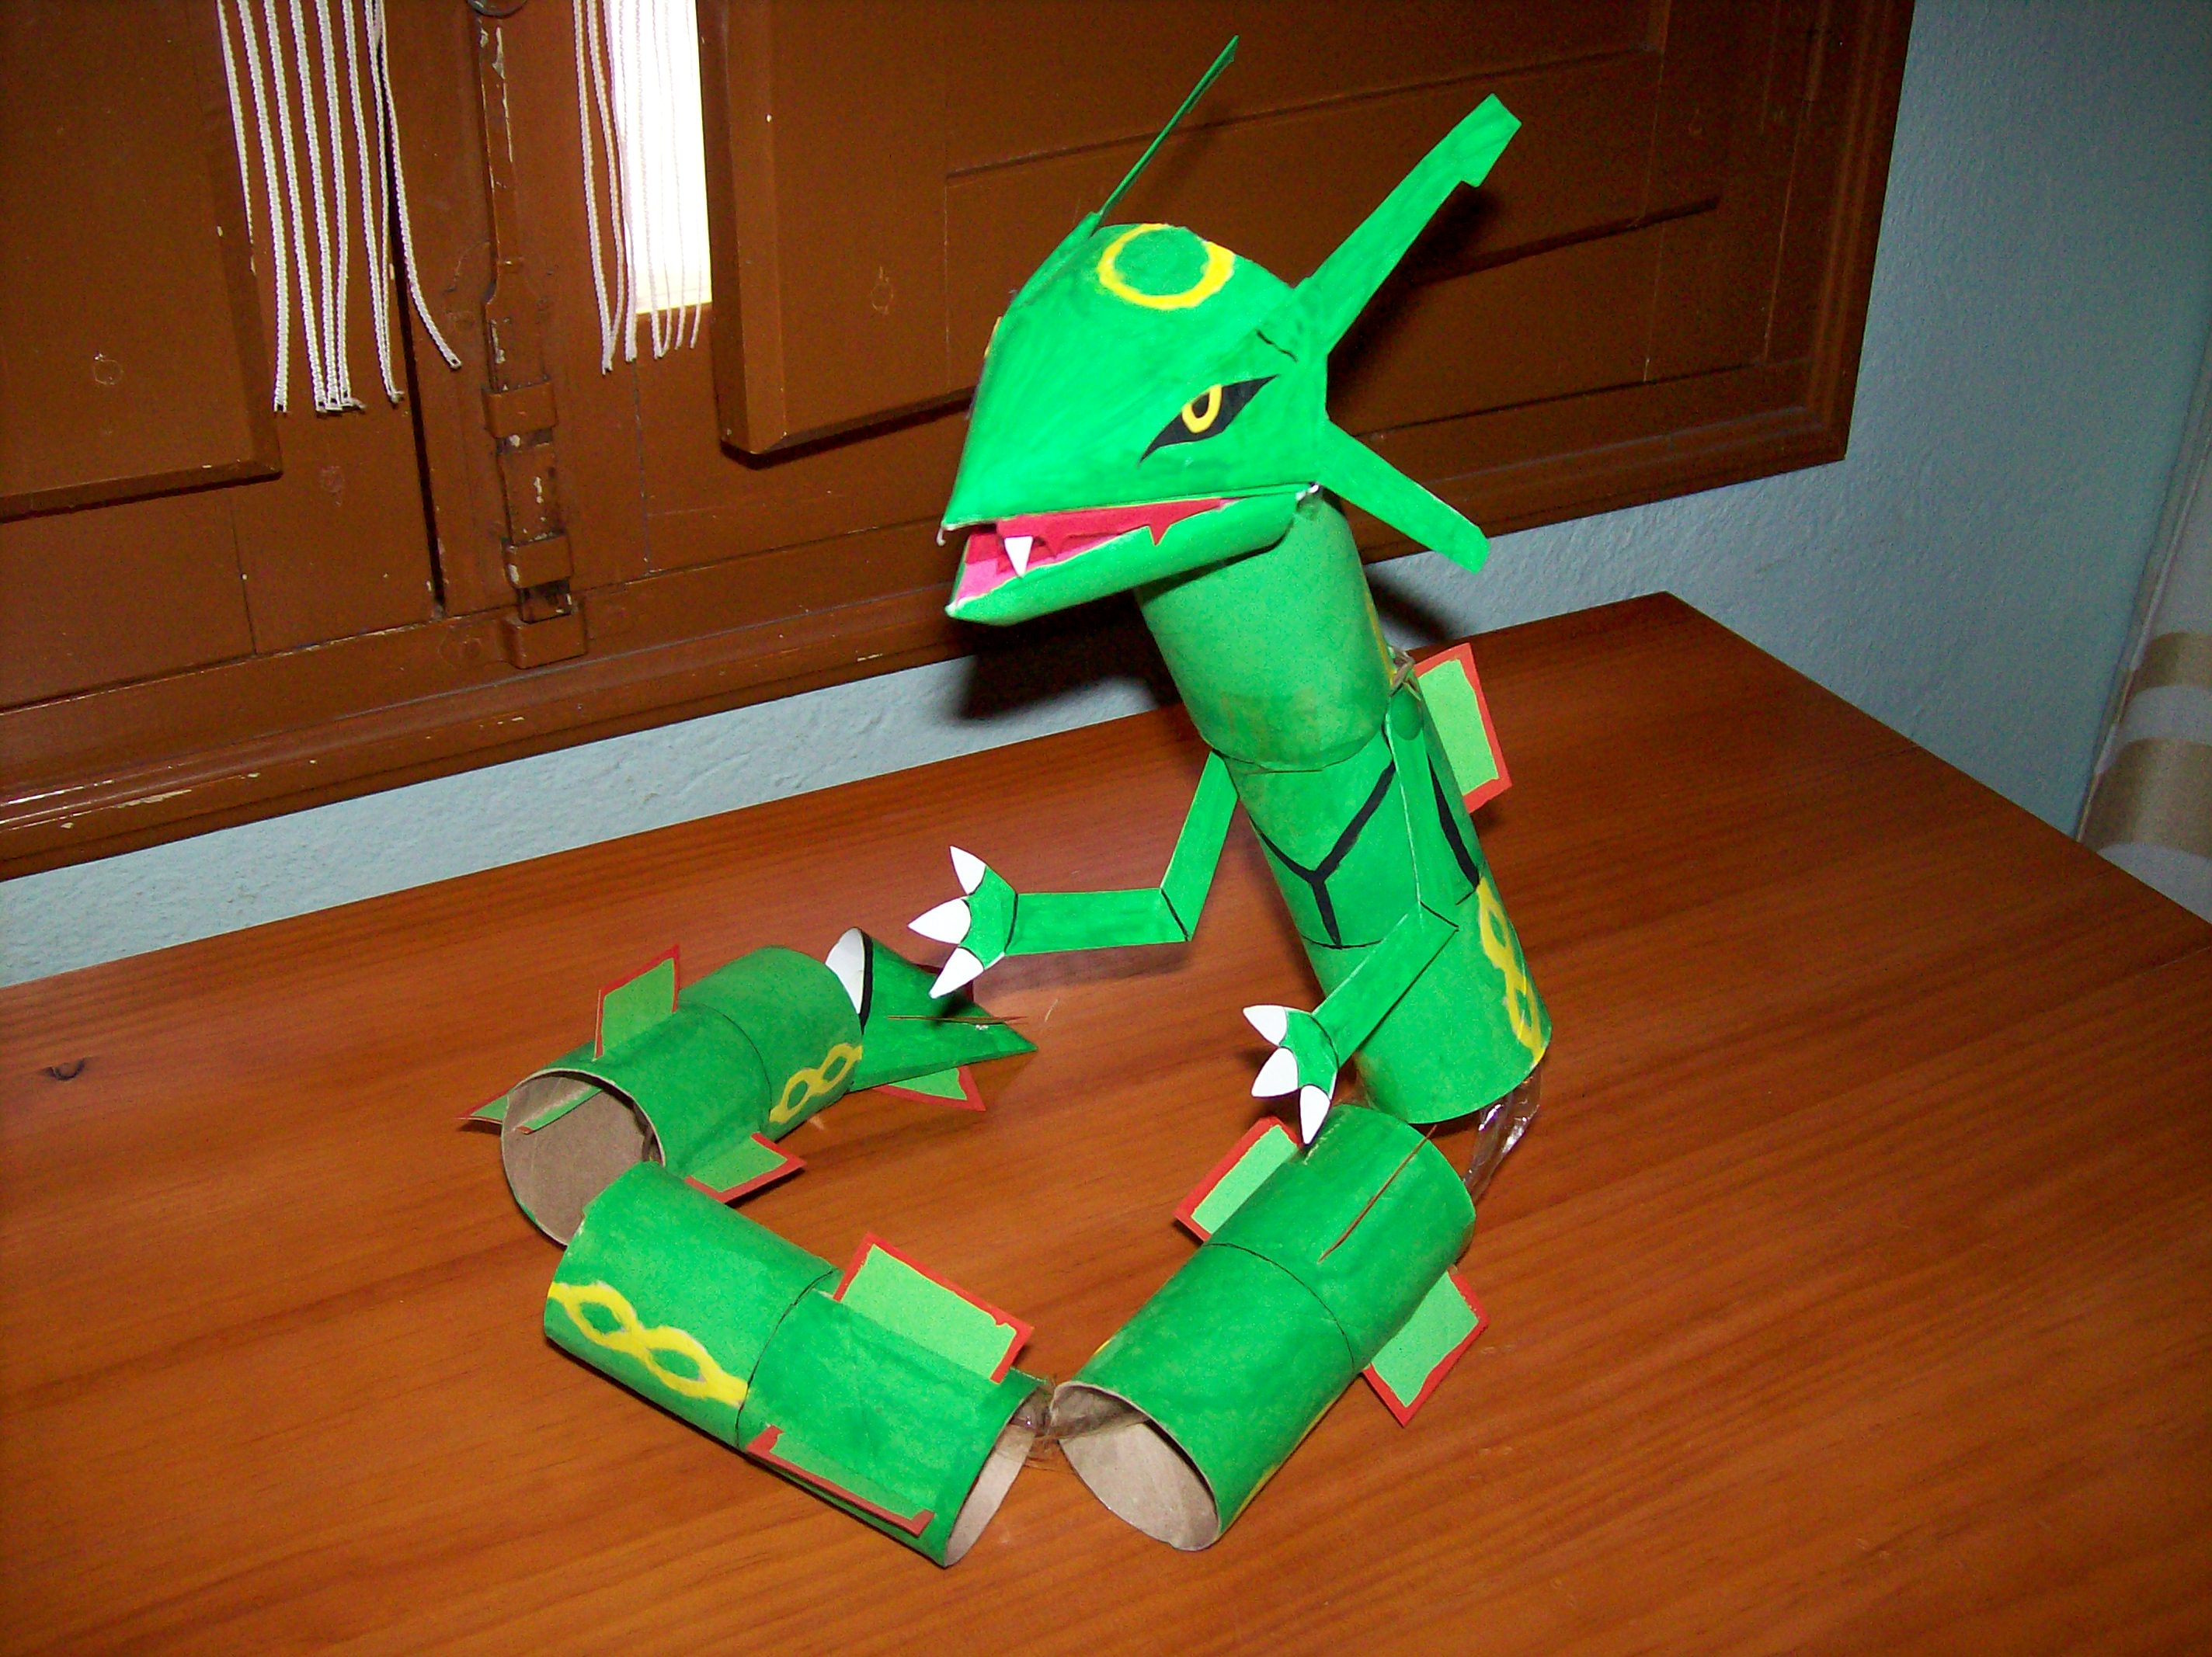 Rayquaza ToiletPaperTubes 2007 by Gonzaloguay